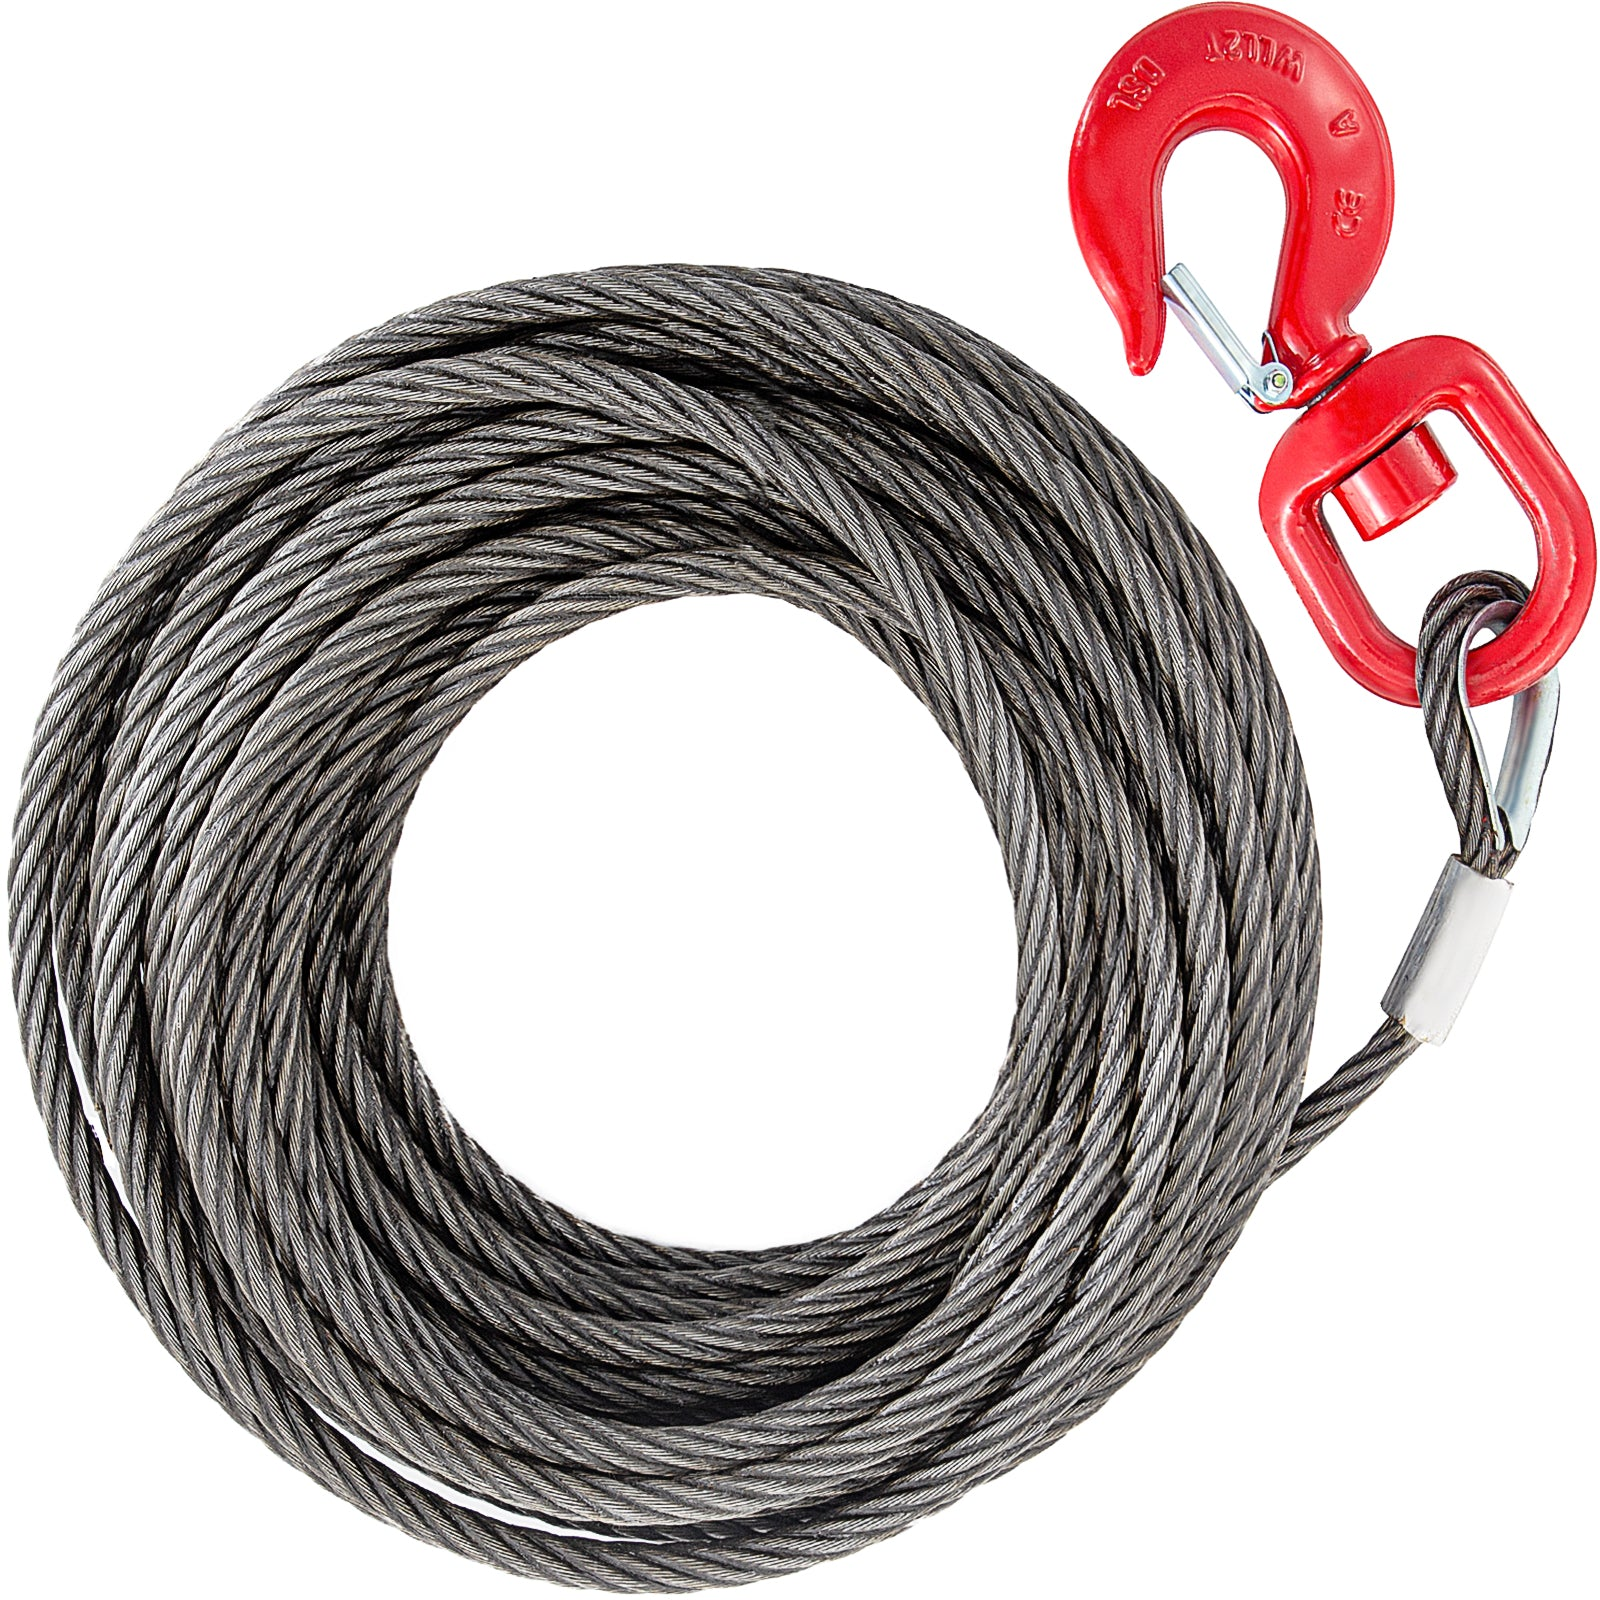 Winch Cable 10mm X 30m Fiber Core Self Locking Swivel Hook Tow Truck Flatbed